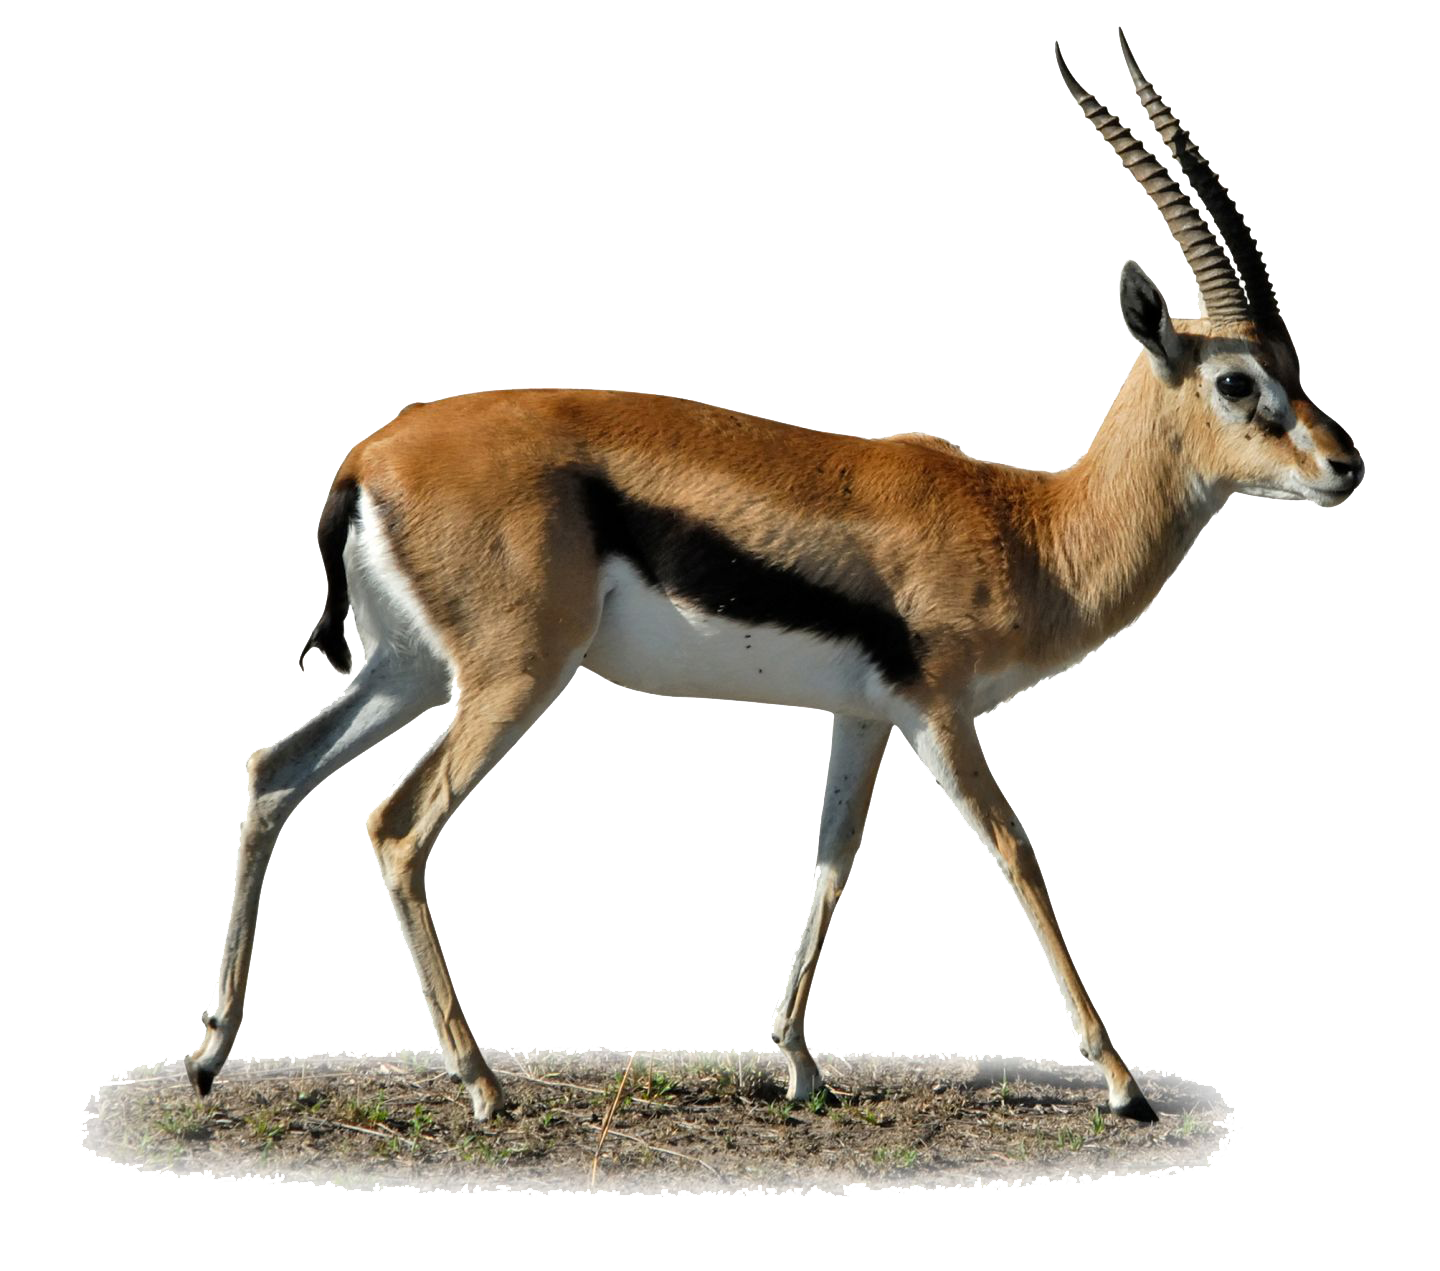 Gazelle PNG Images Transparent Free Download.